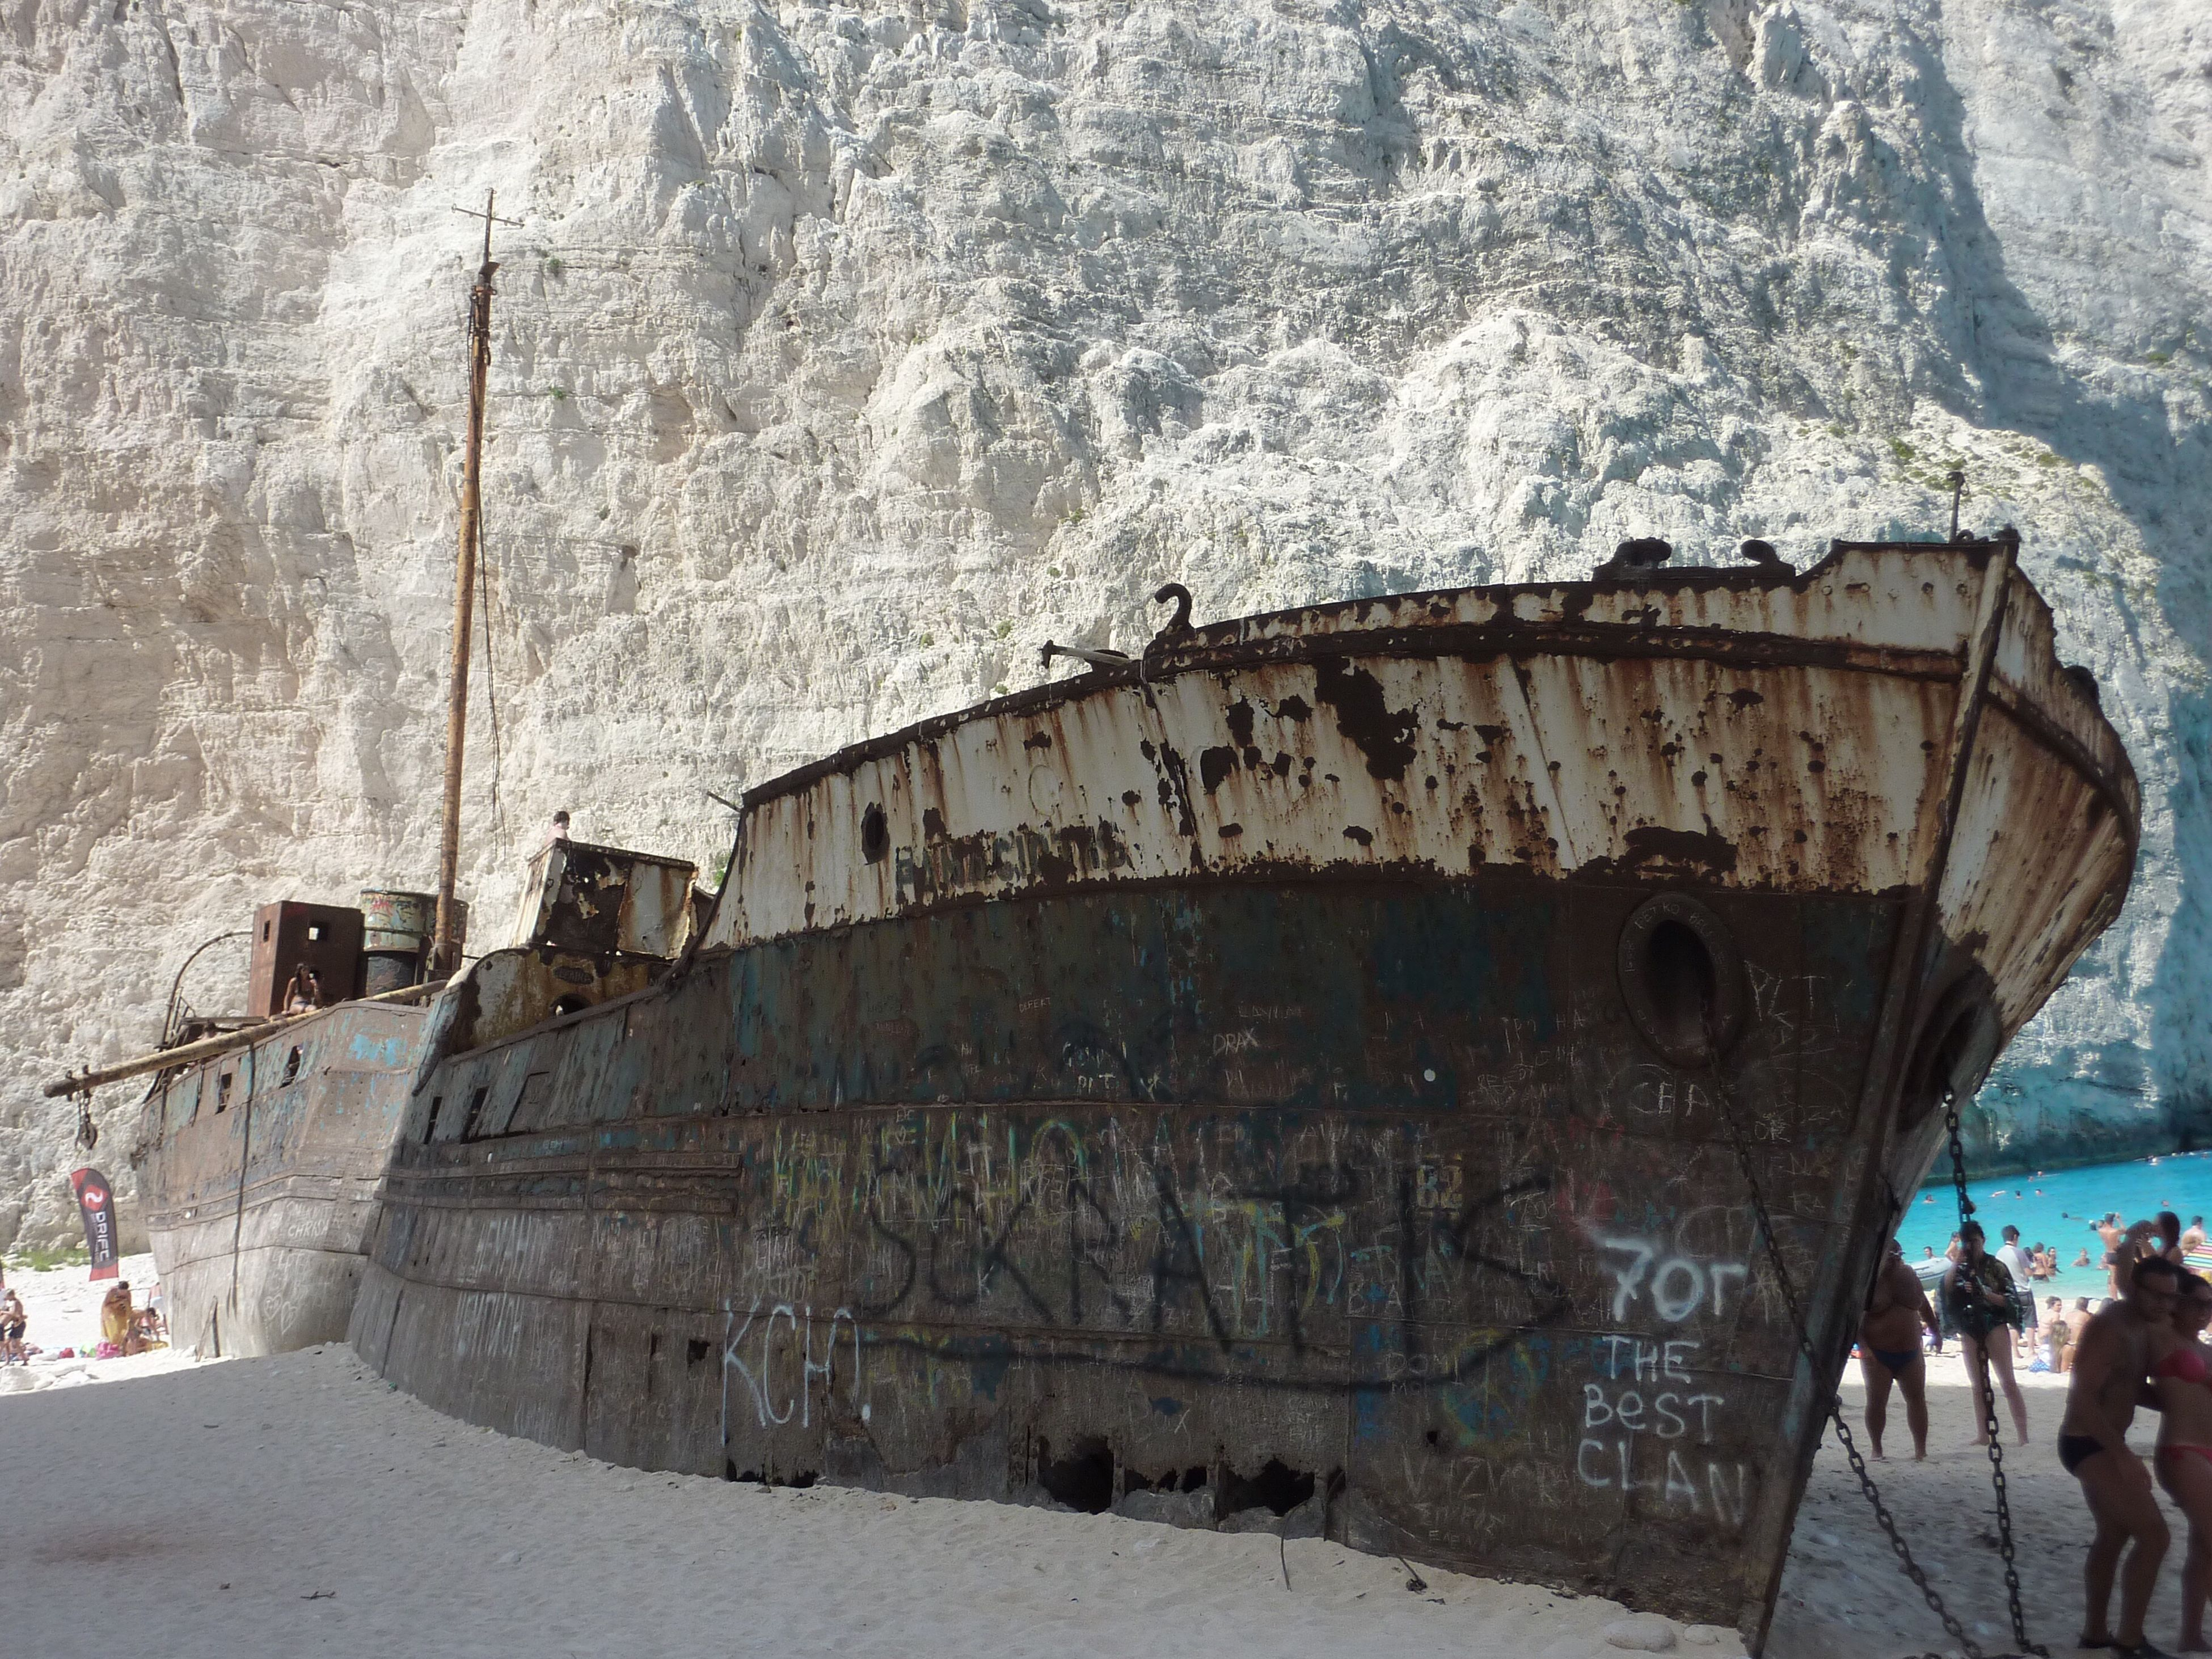 abandoned, desolate, rusty, outdoors, nautical vessel, nature, day, no people, deserted